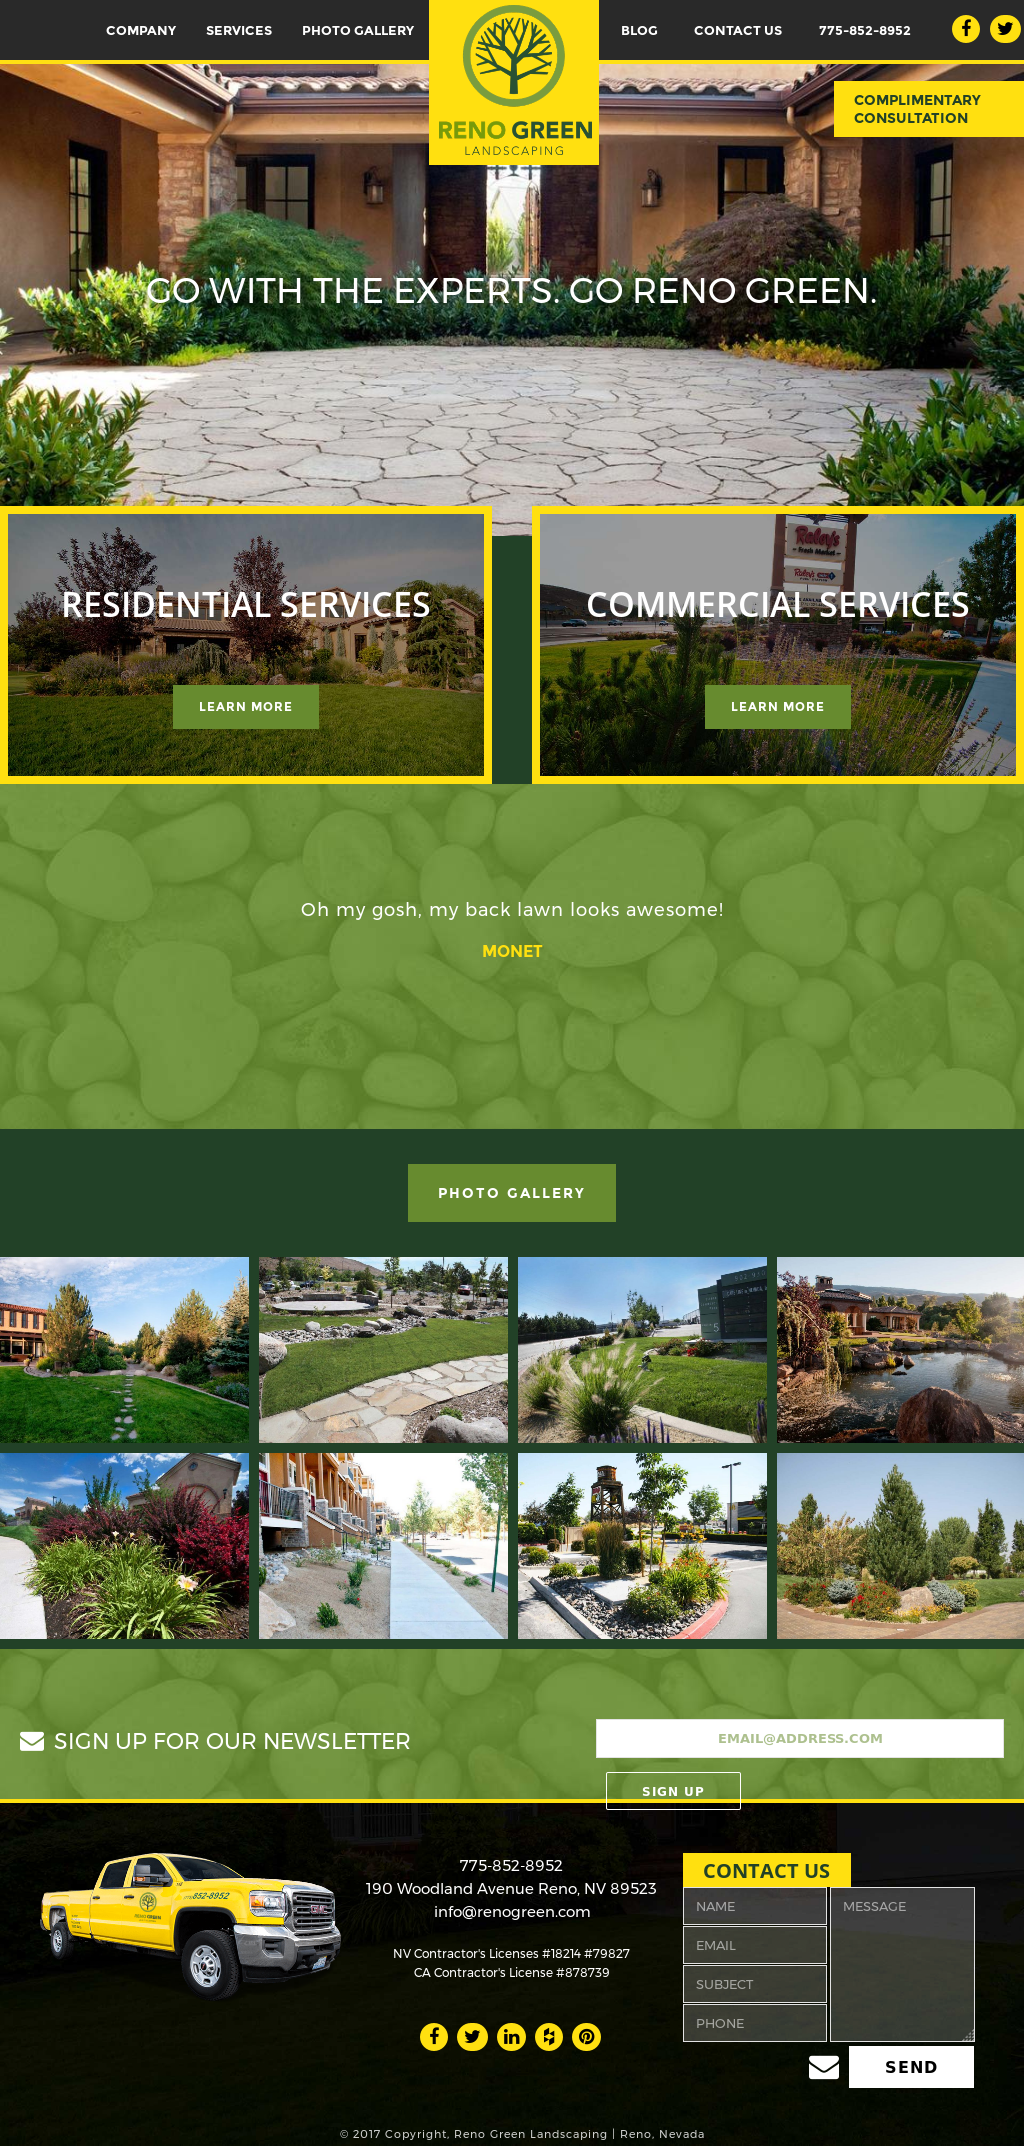 Reno Green Landscaping website history - Reno Green Landscaping Competitors, Revenue And Employees - Owler